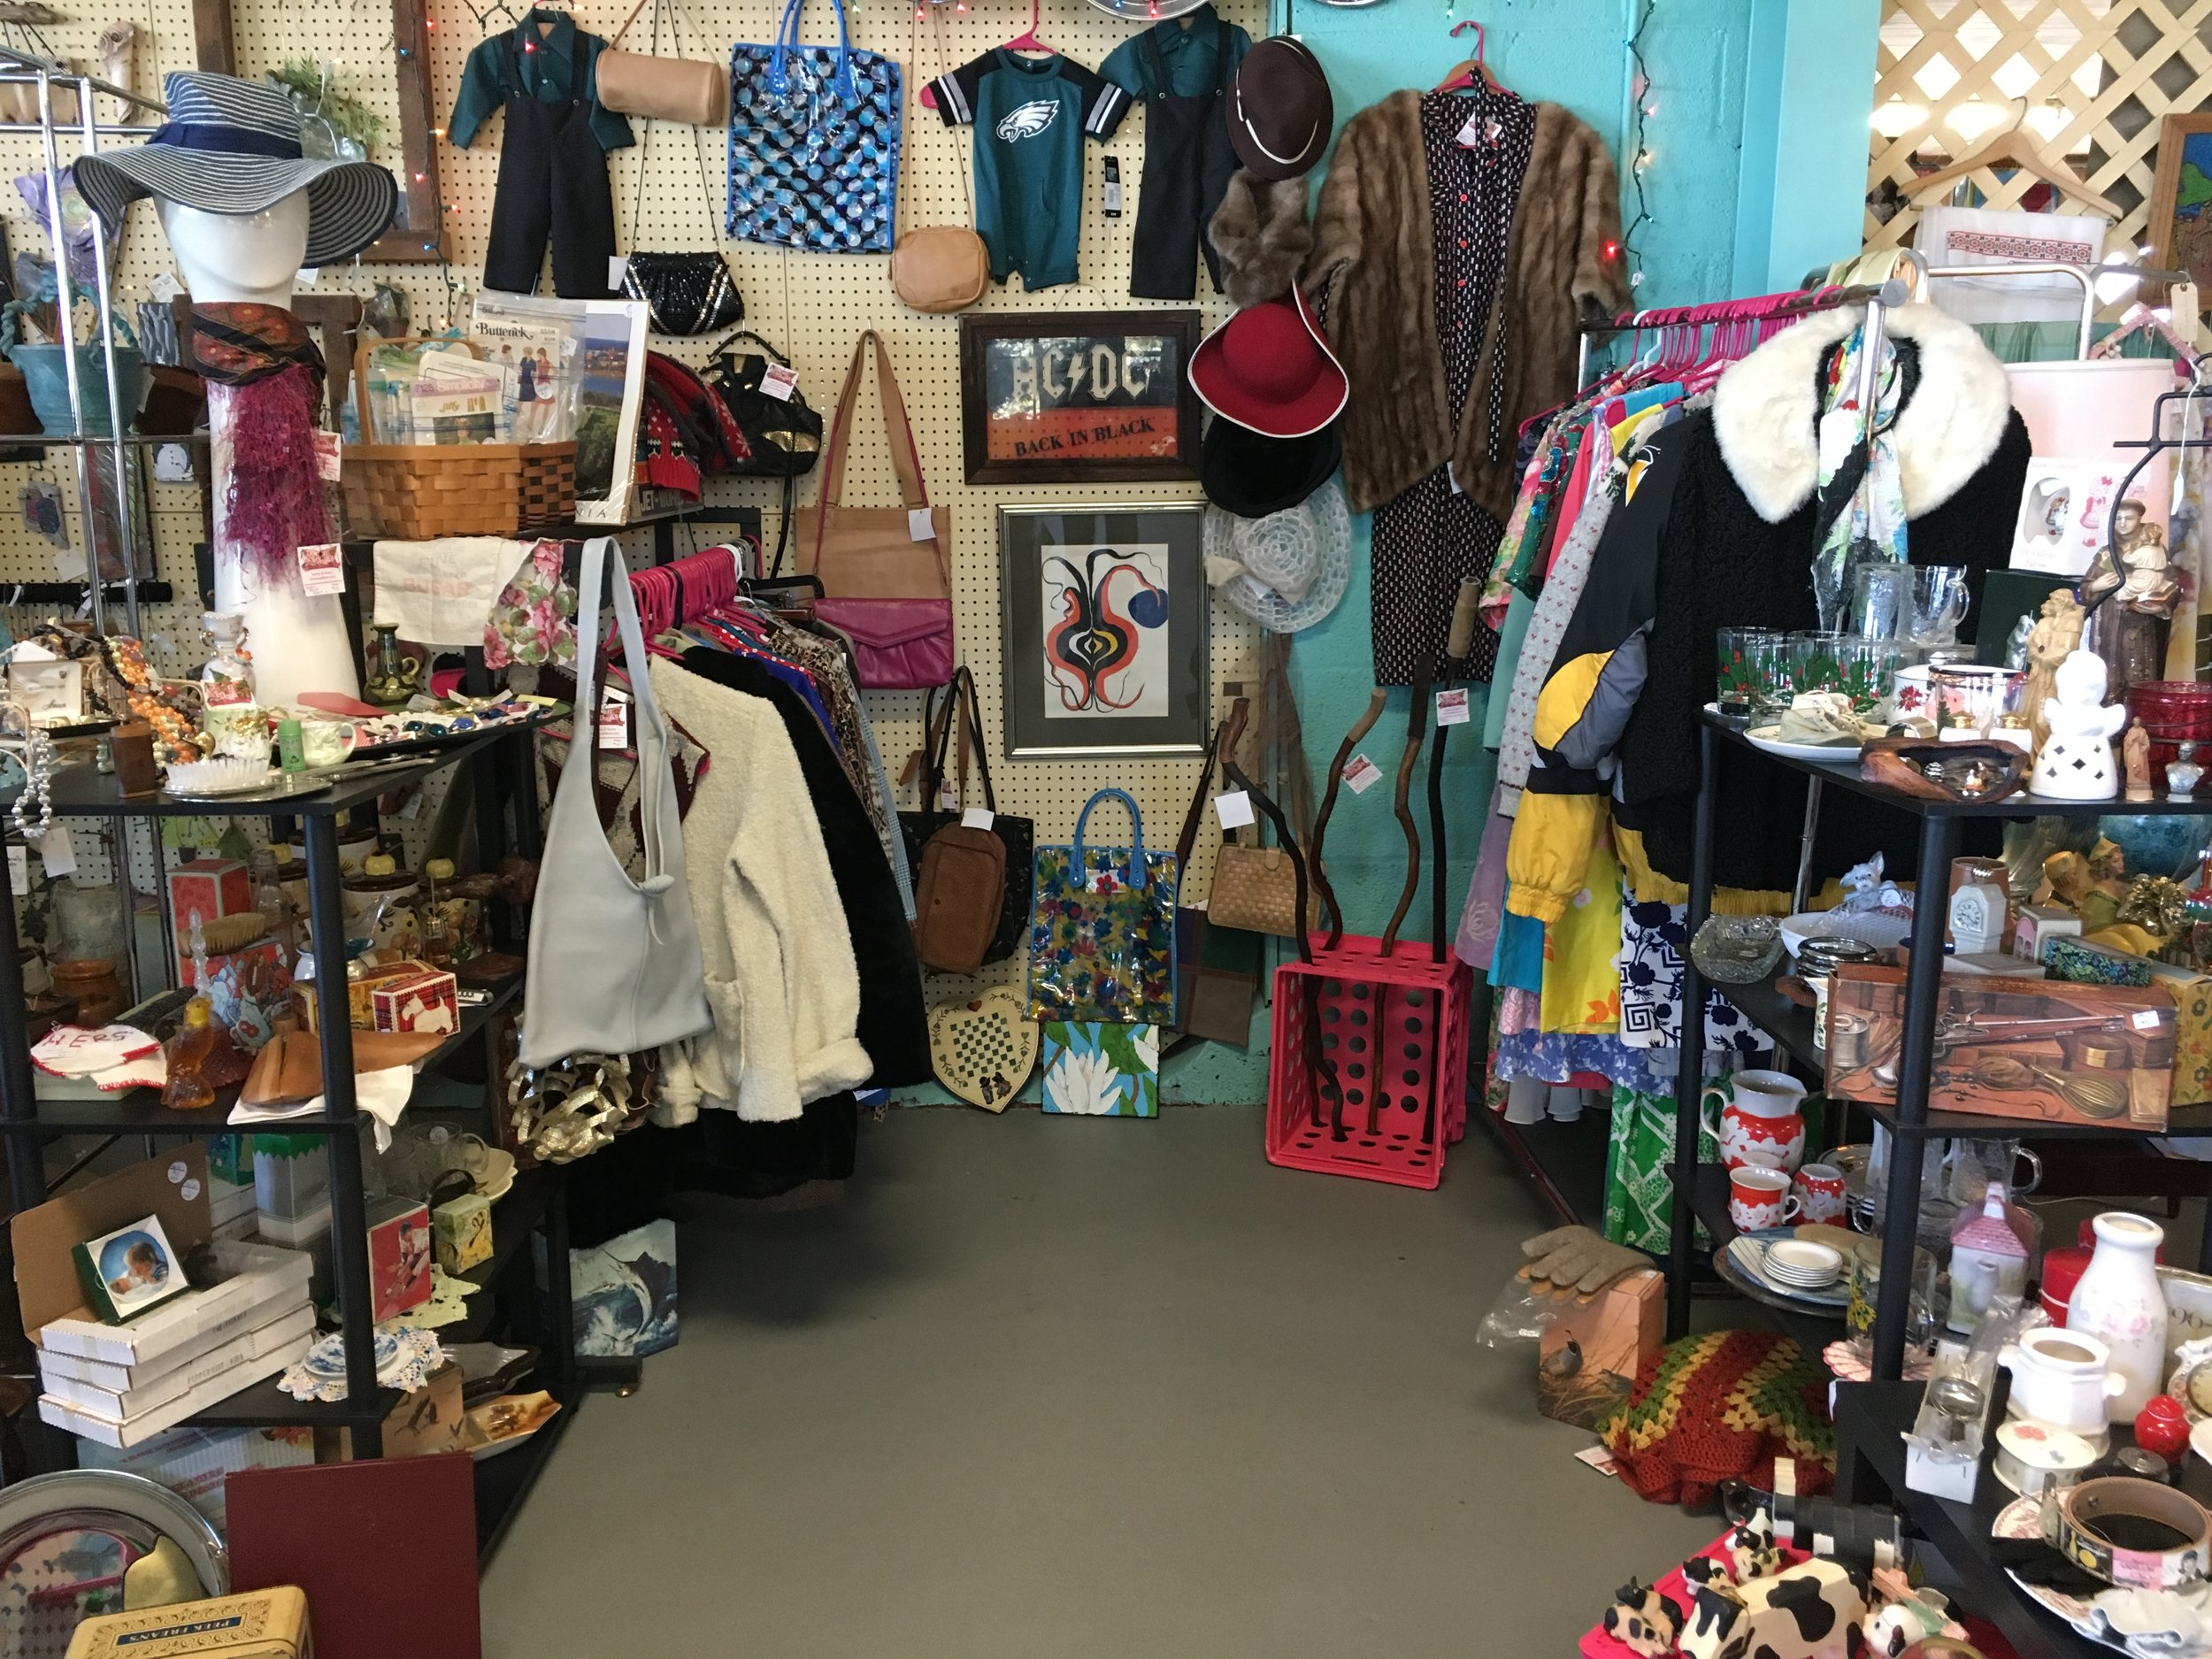 Damon and Dora's Vintage Clothing - We are a small vintage establishment priding ourselves on quality and affordability.